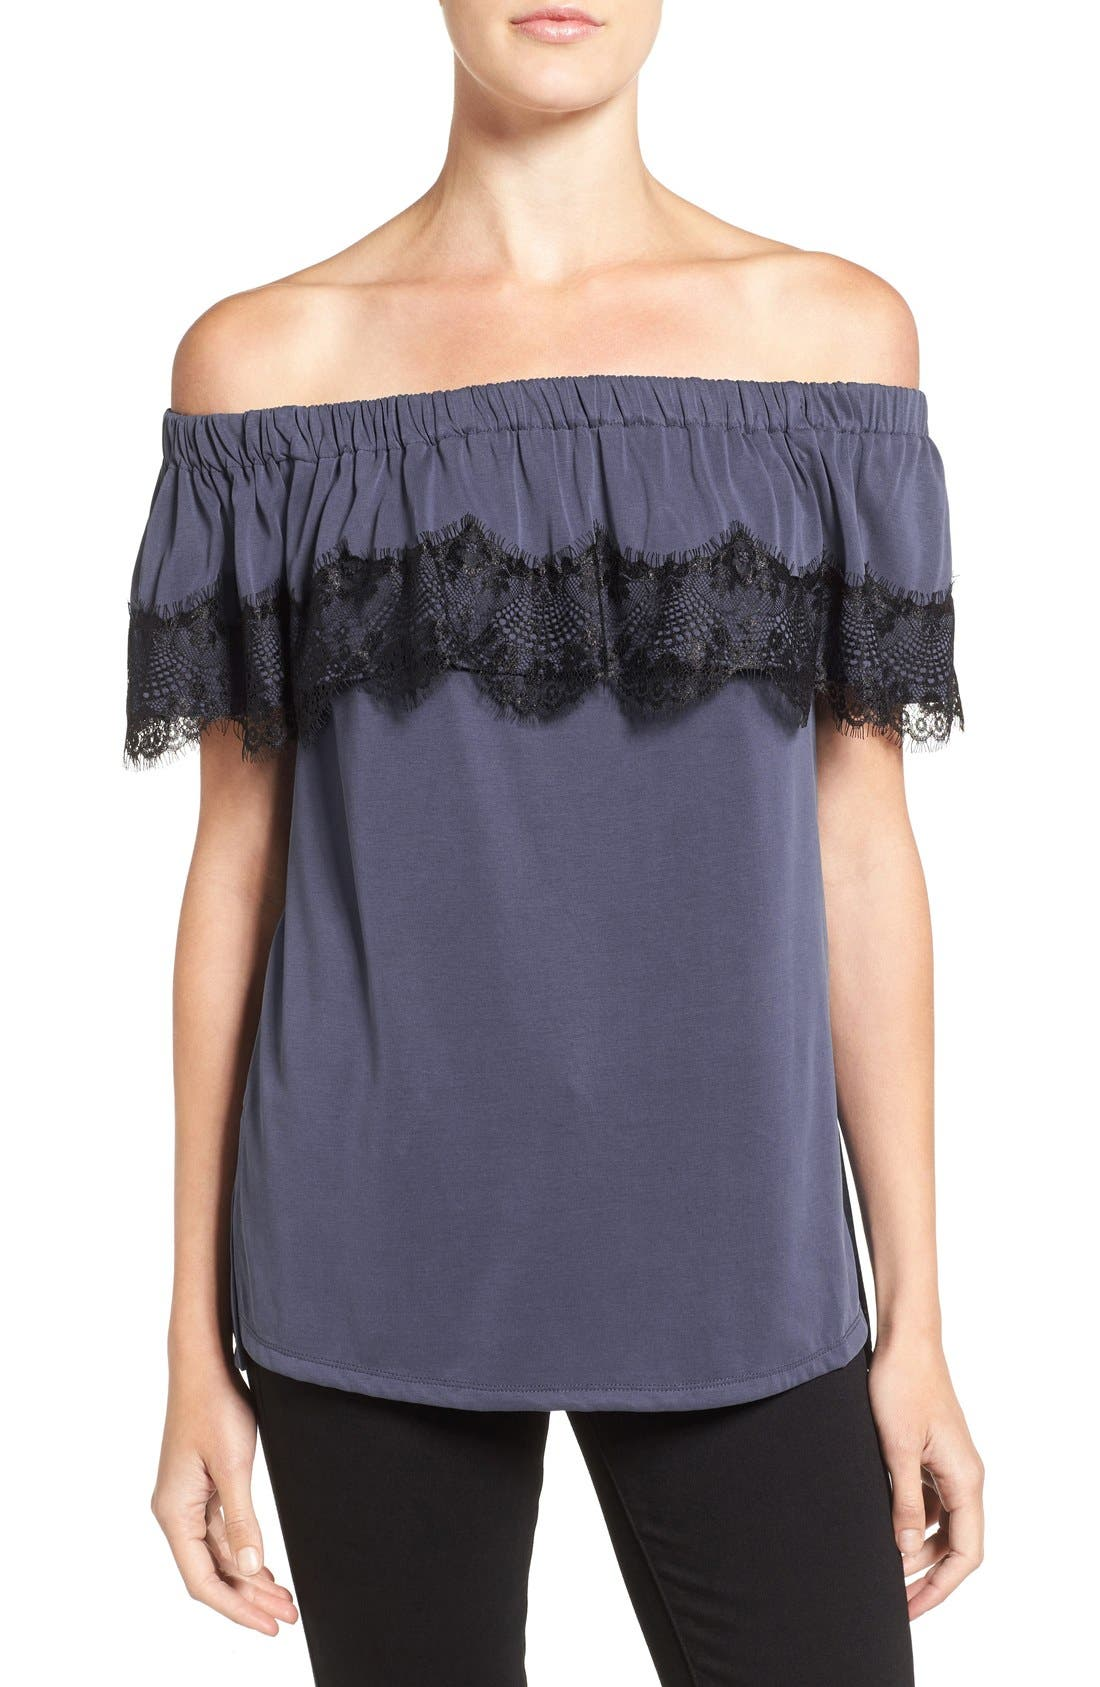 Alternate Image 1 Selected - Ella Moss 'Isabella' Lace Trim Off the Shoulder Top